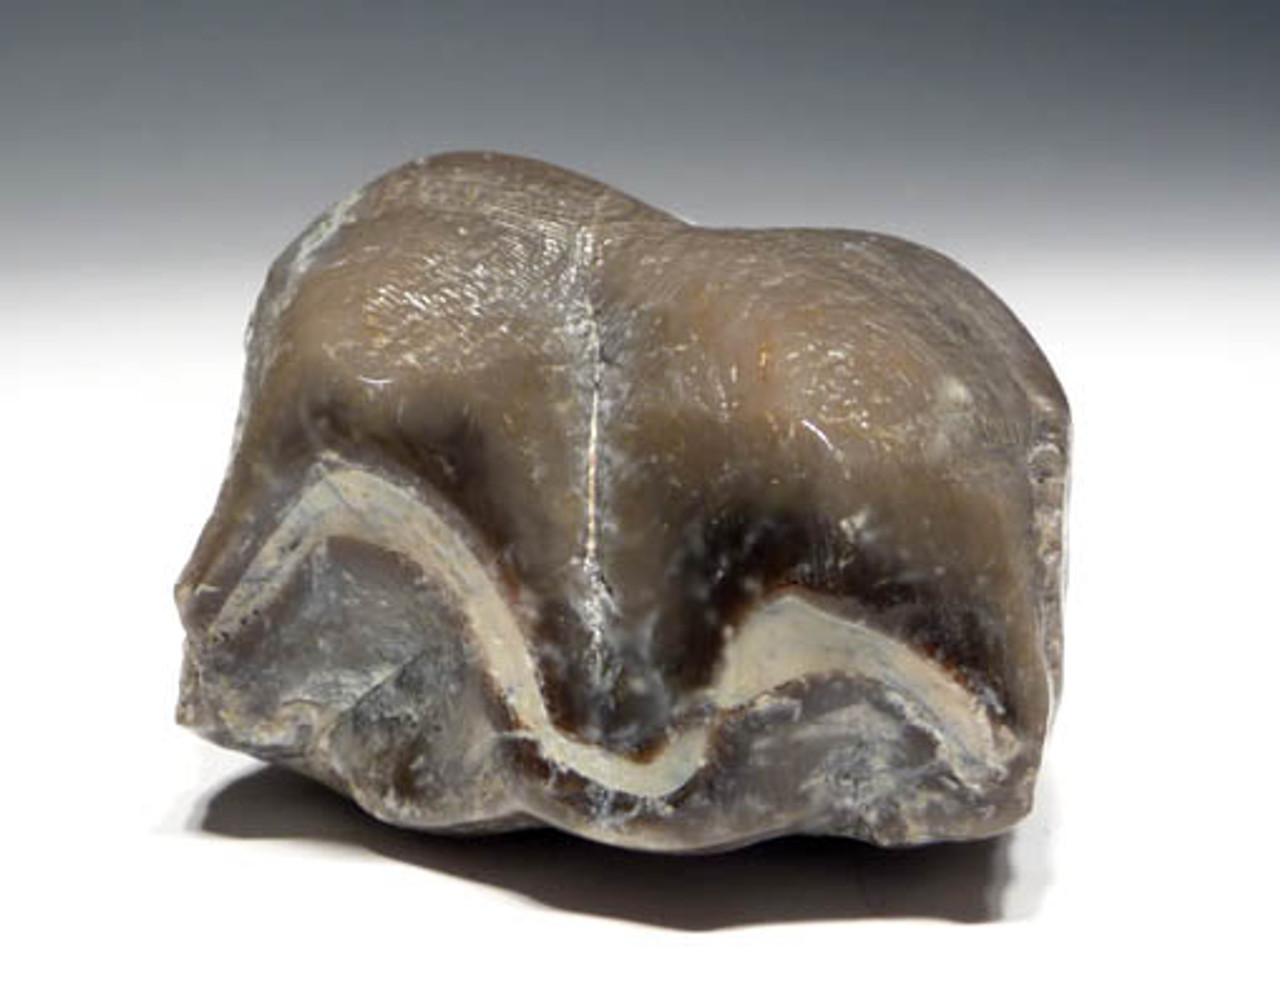 LMX002 - RARE TITANOTHERE FOSSIL BRONTOPS MOLAR TOOTH WITH FULL ROOT